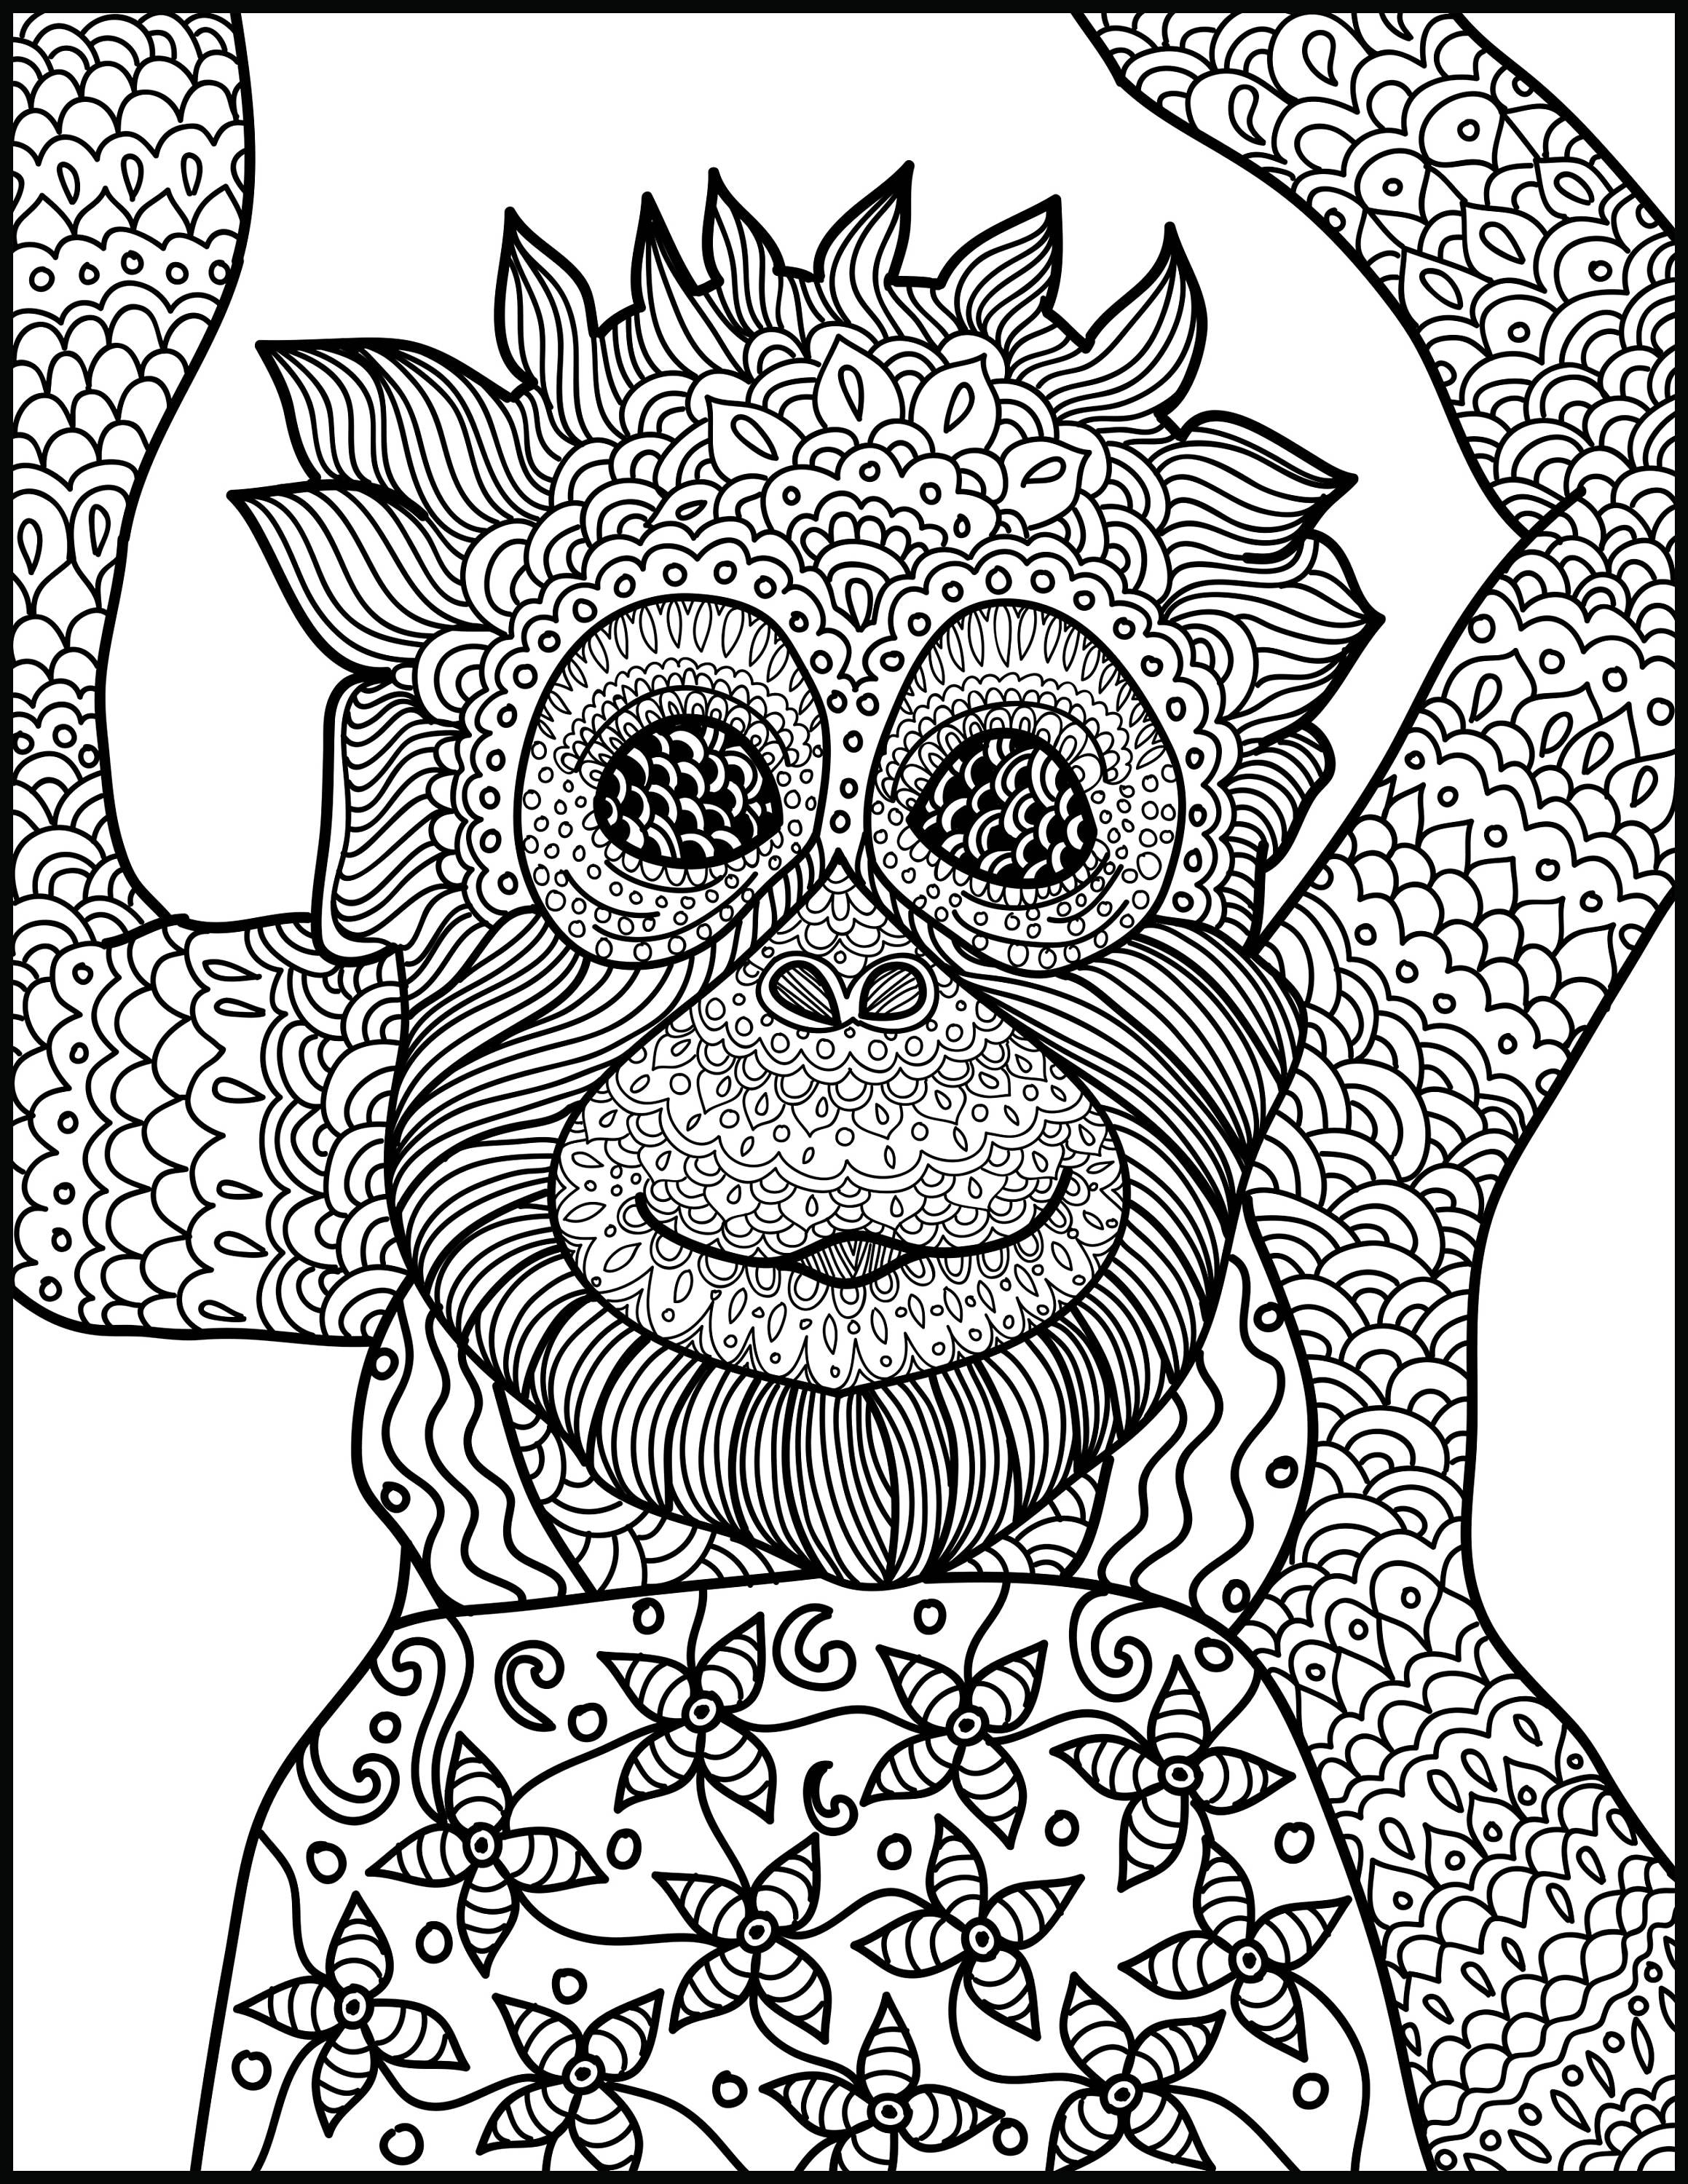 Animal Coloring Page Monkey Printable Adult Coloring Page Etsy